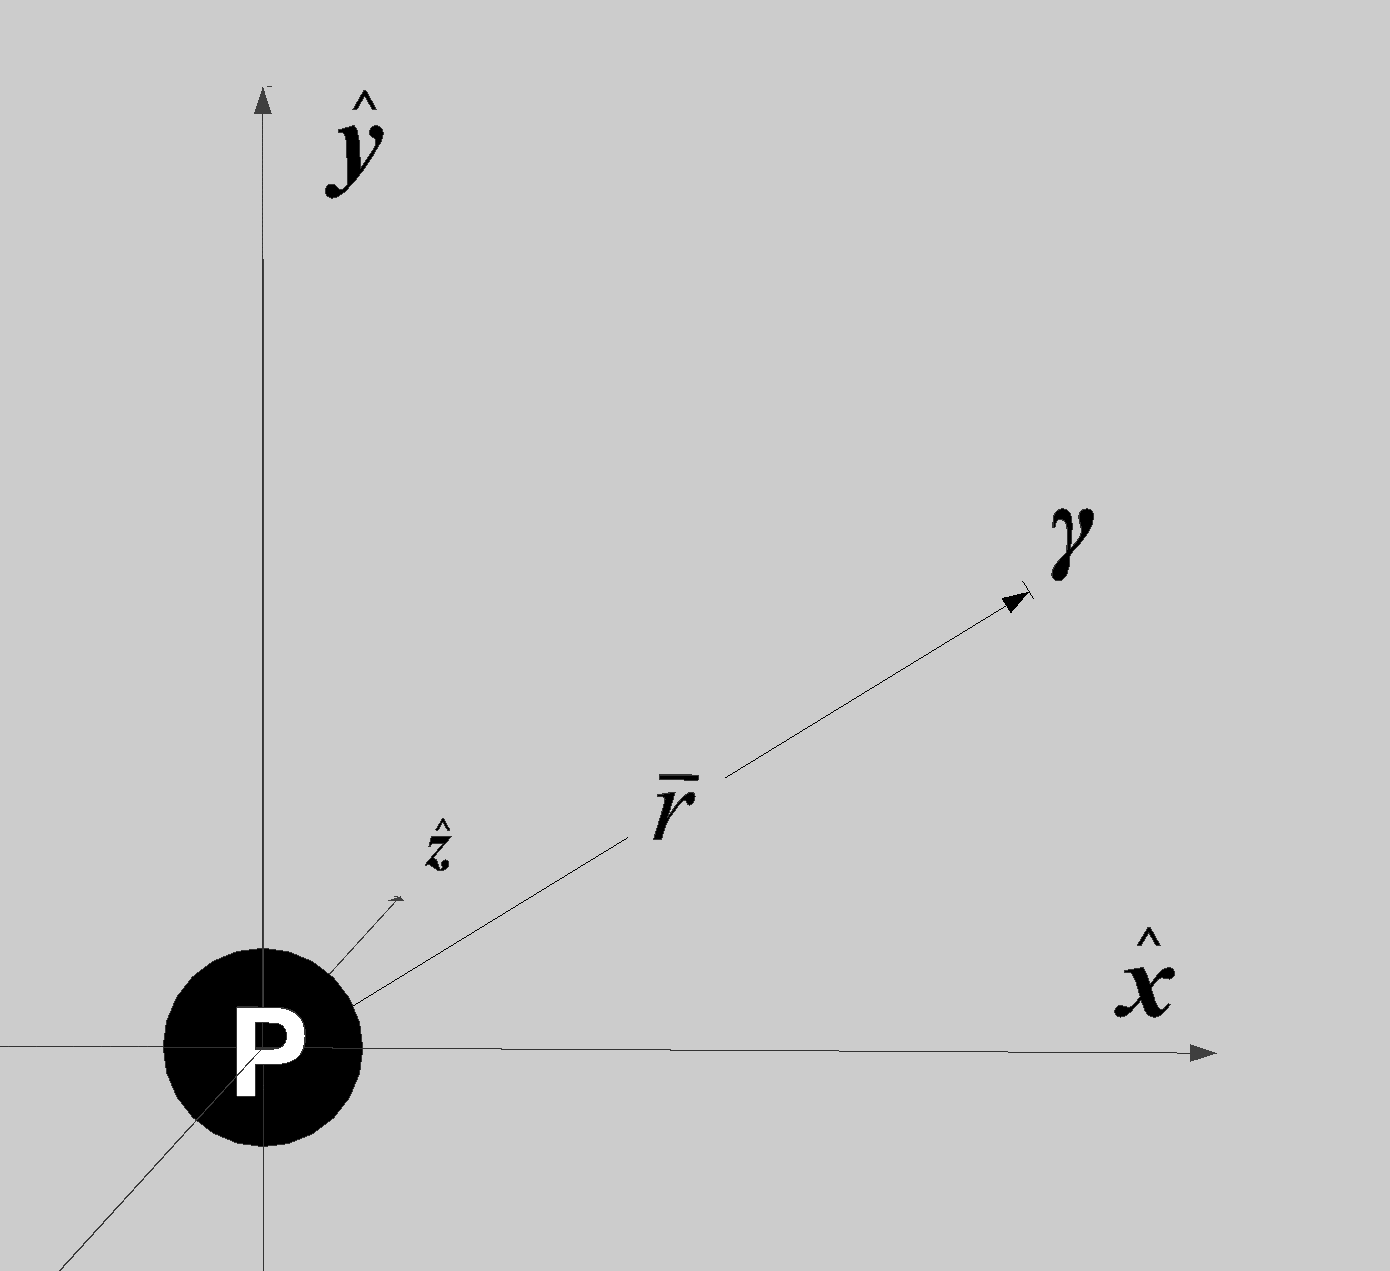 A three-dimensional space with particle P at the center of a Cartesian coordinate system. P includes a proton located at the origin and a photon somewhere in the vicinity.